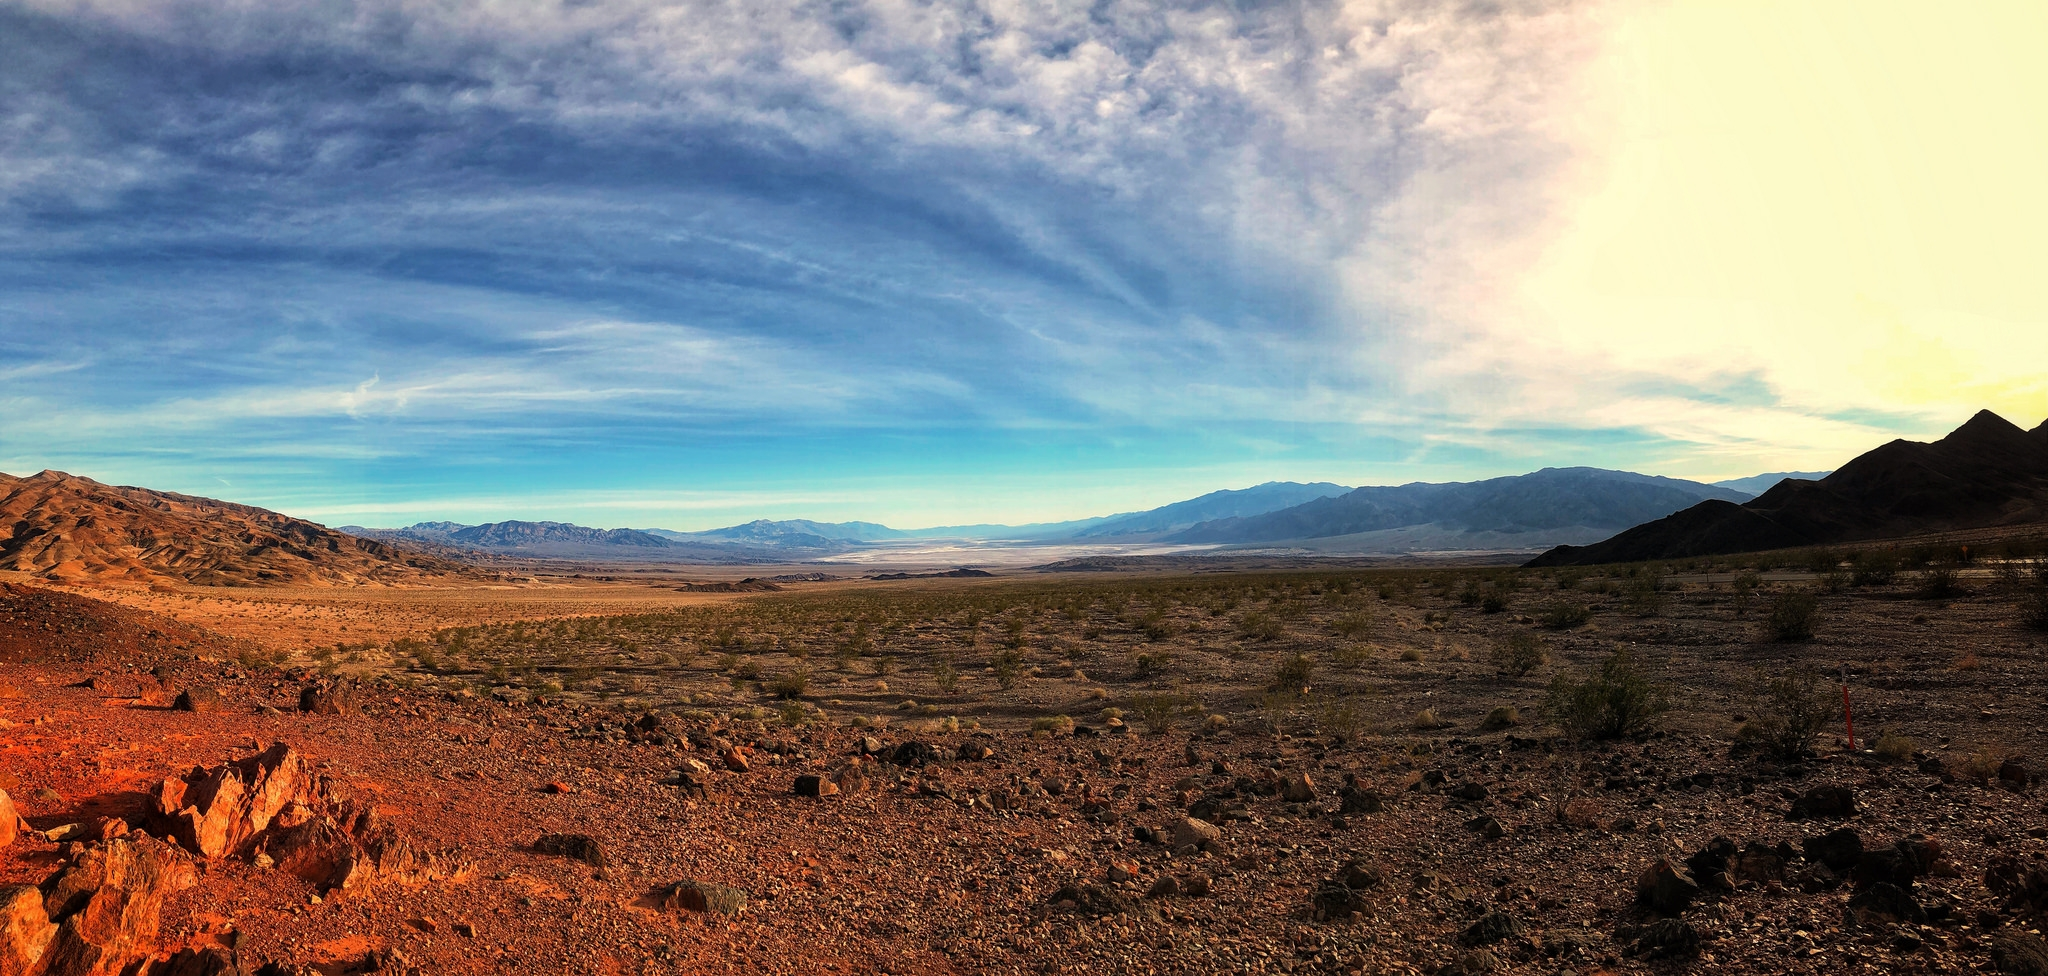 Expanse of Death Valley